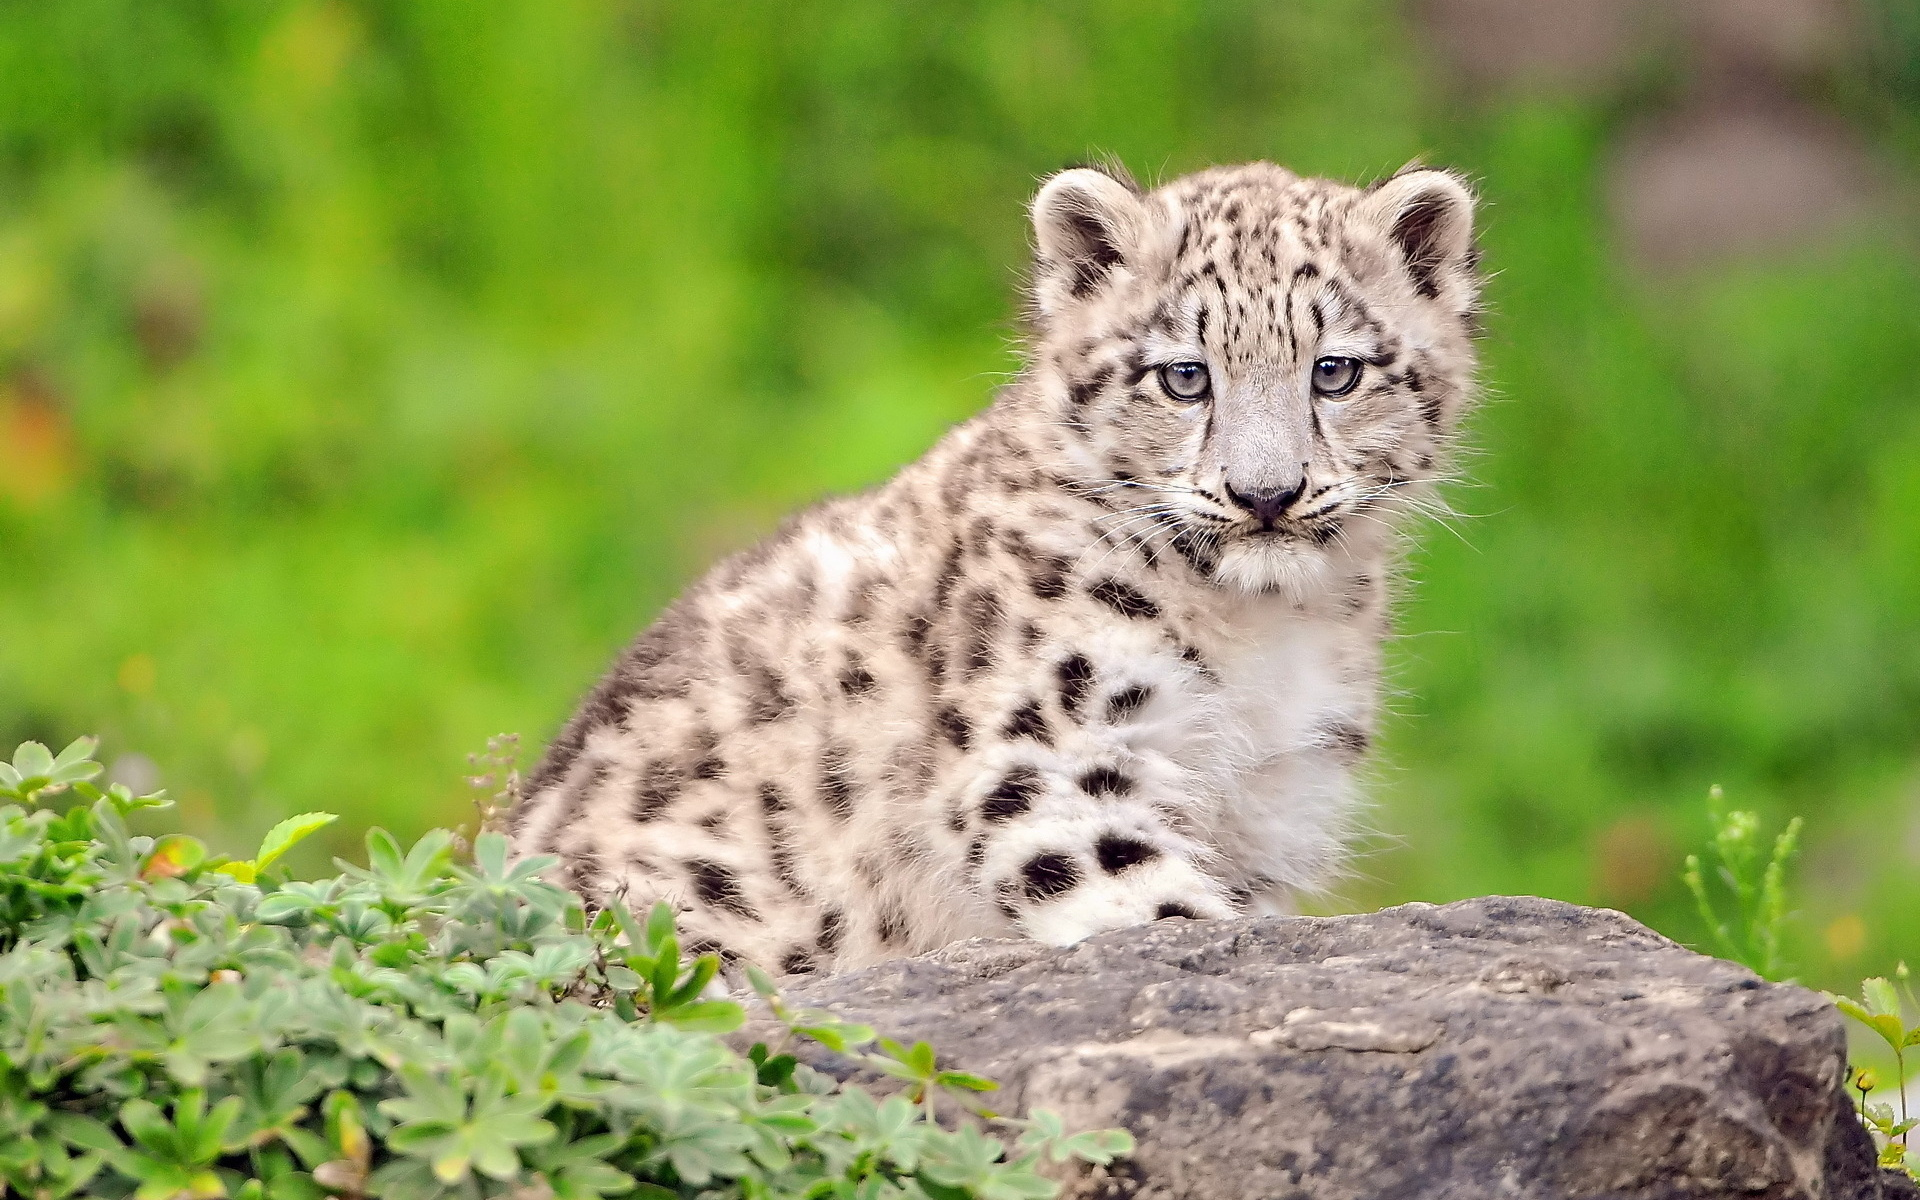 White Cutest Snow Leopard Cub Click To View